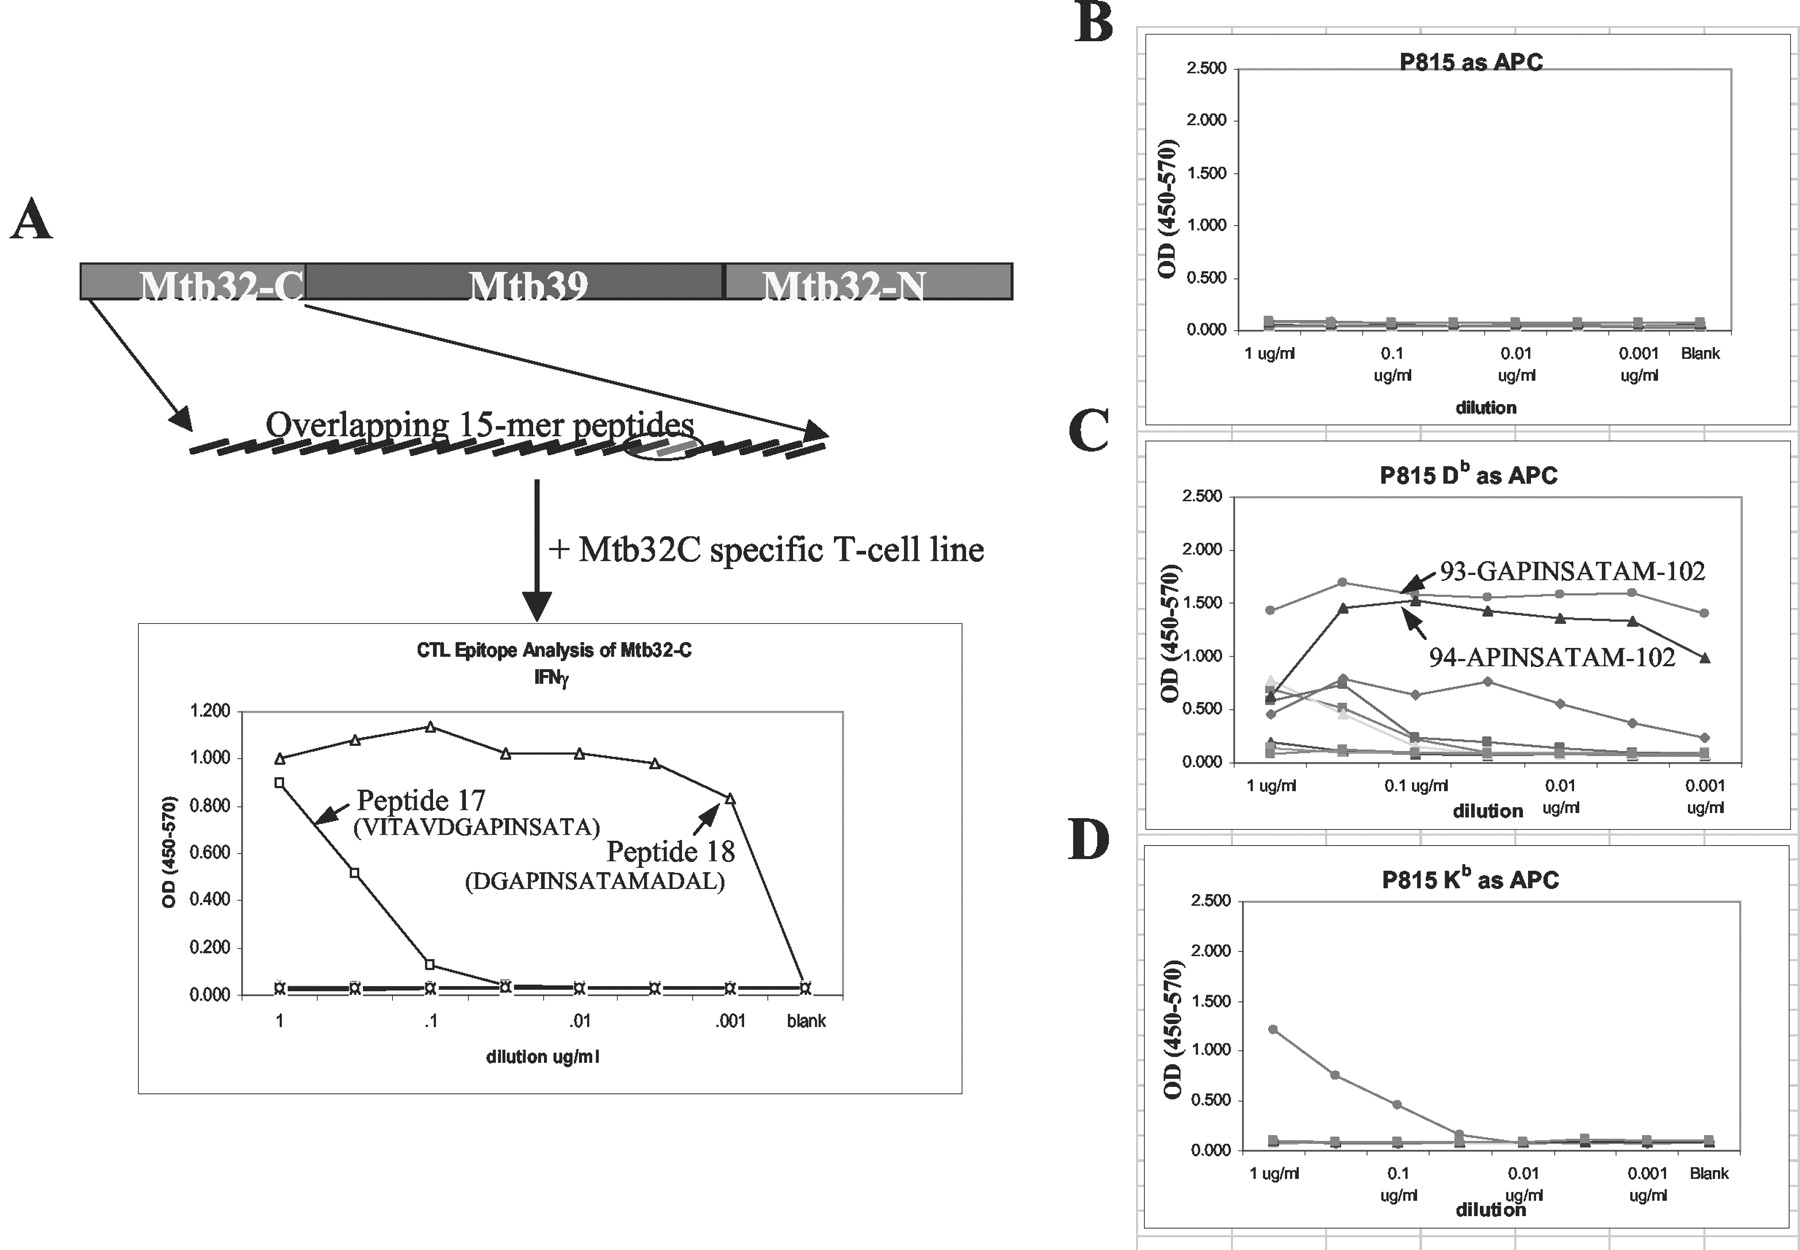 Humoral Immune Response and Protective Efficacy of Binary